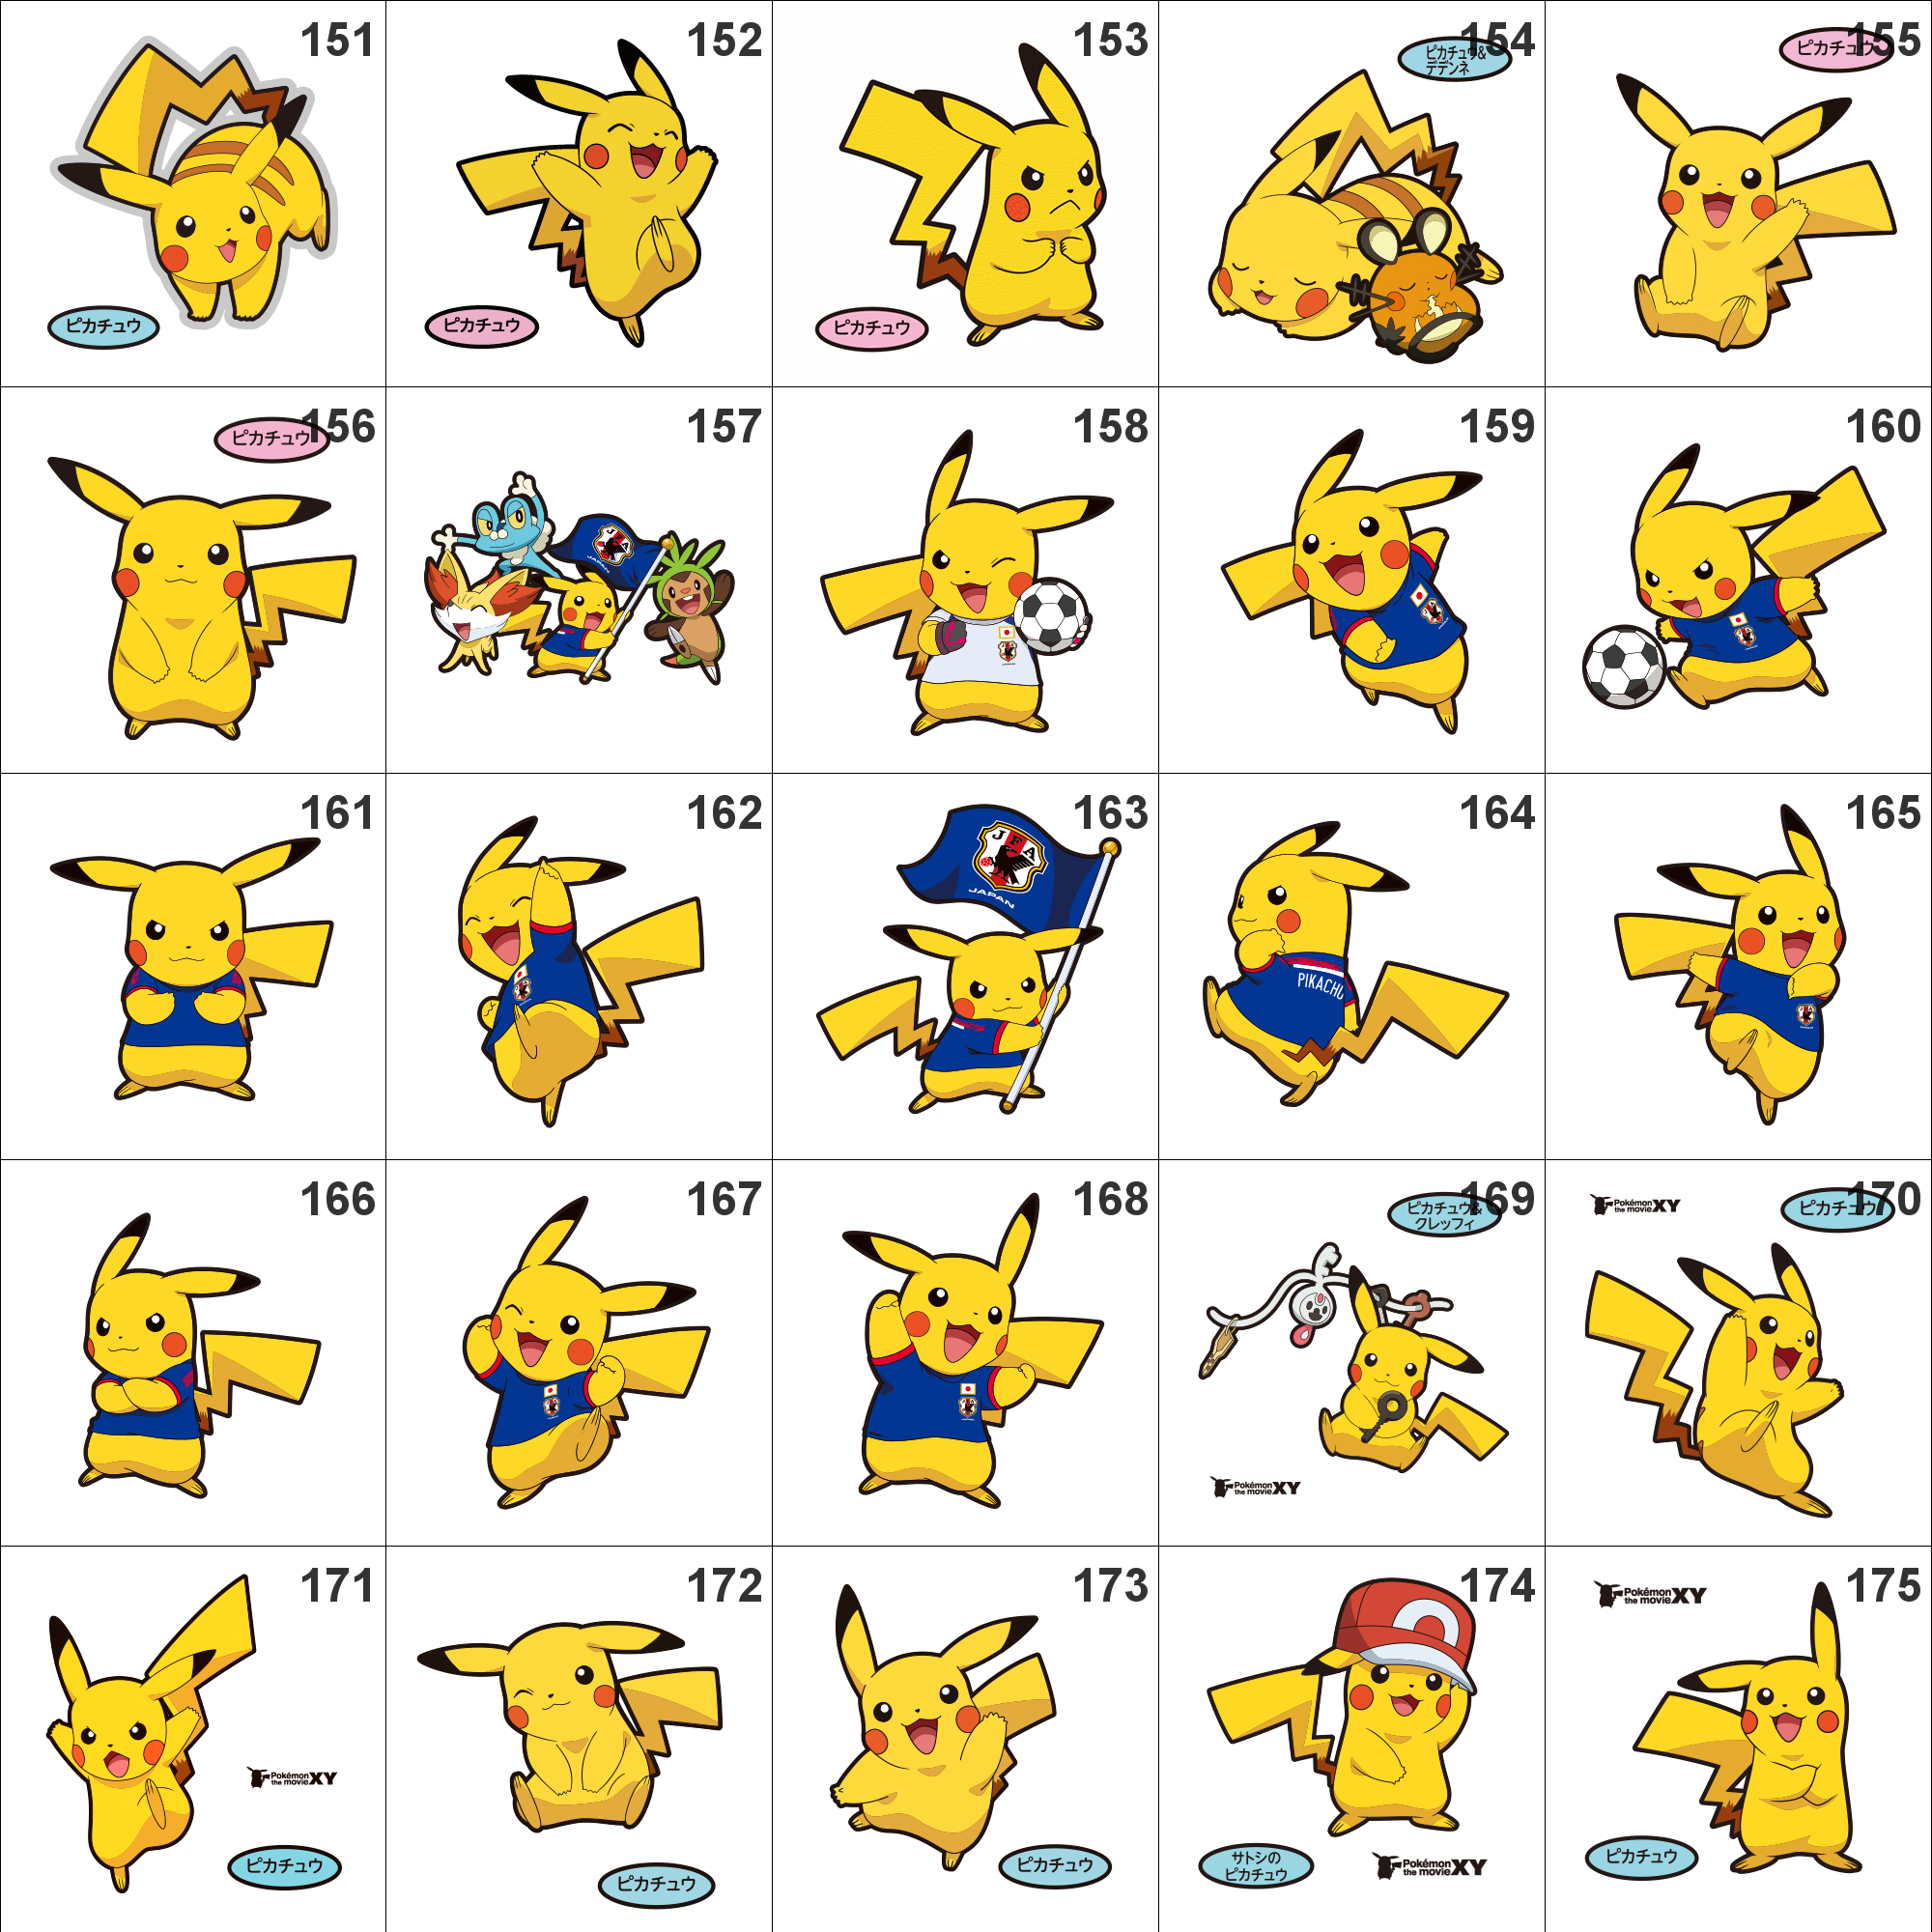 025 Pikachu Pan Stickers Pokemon